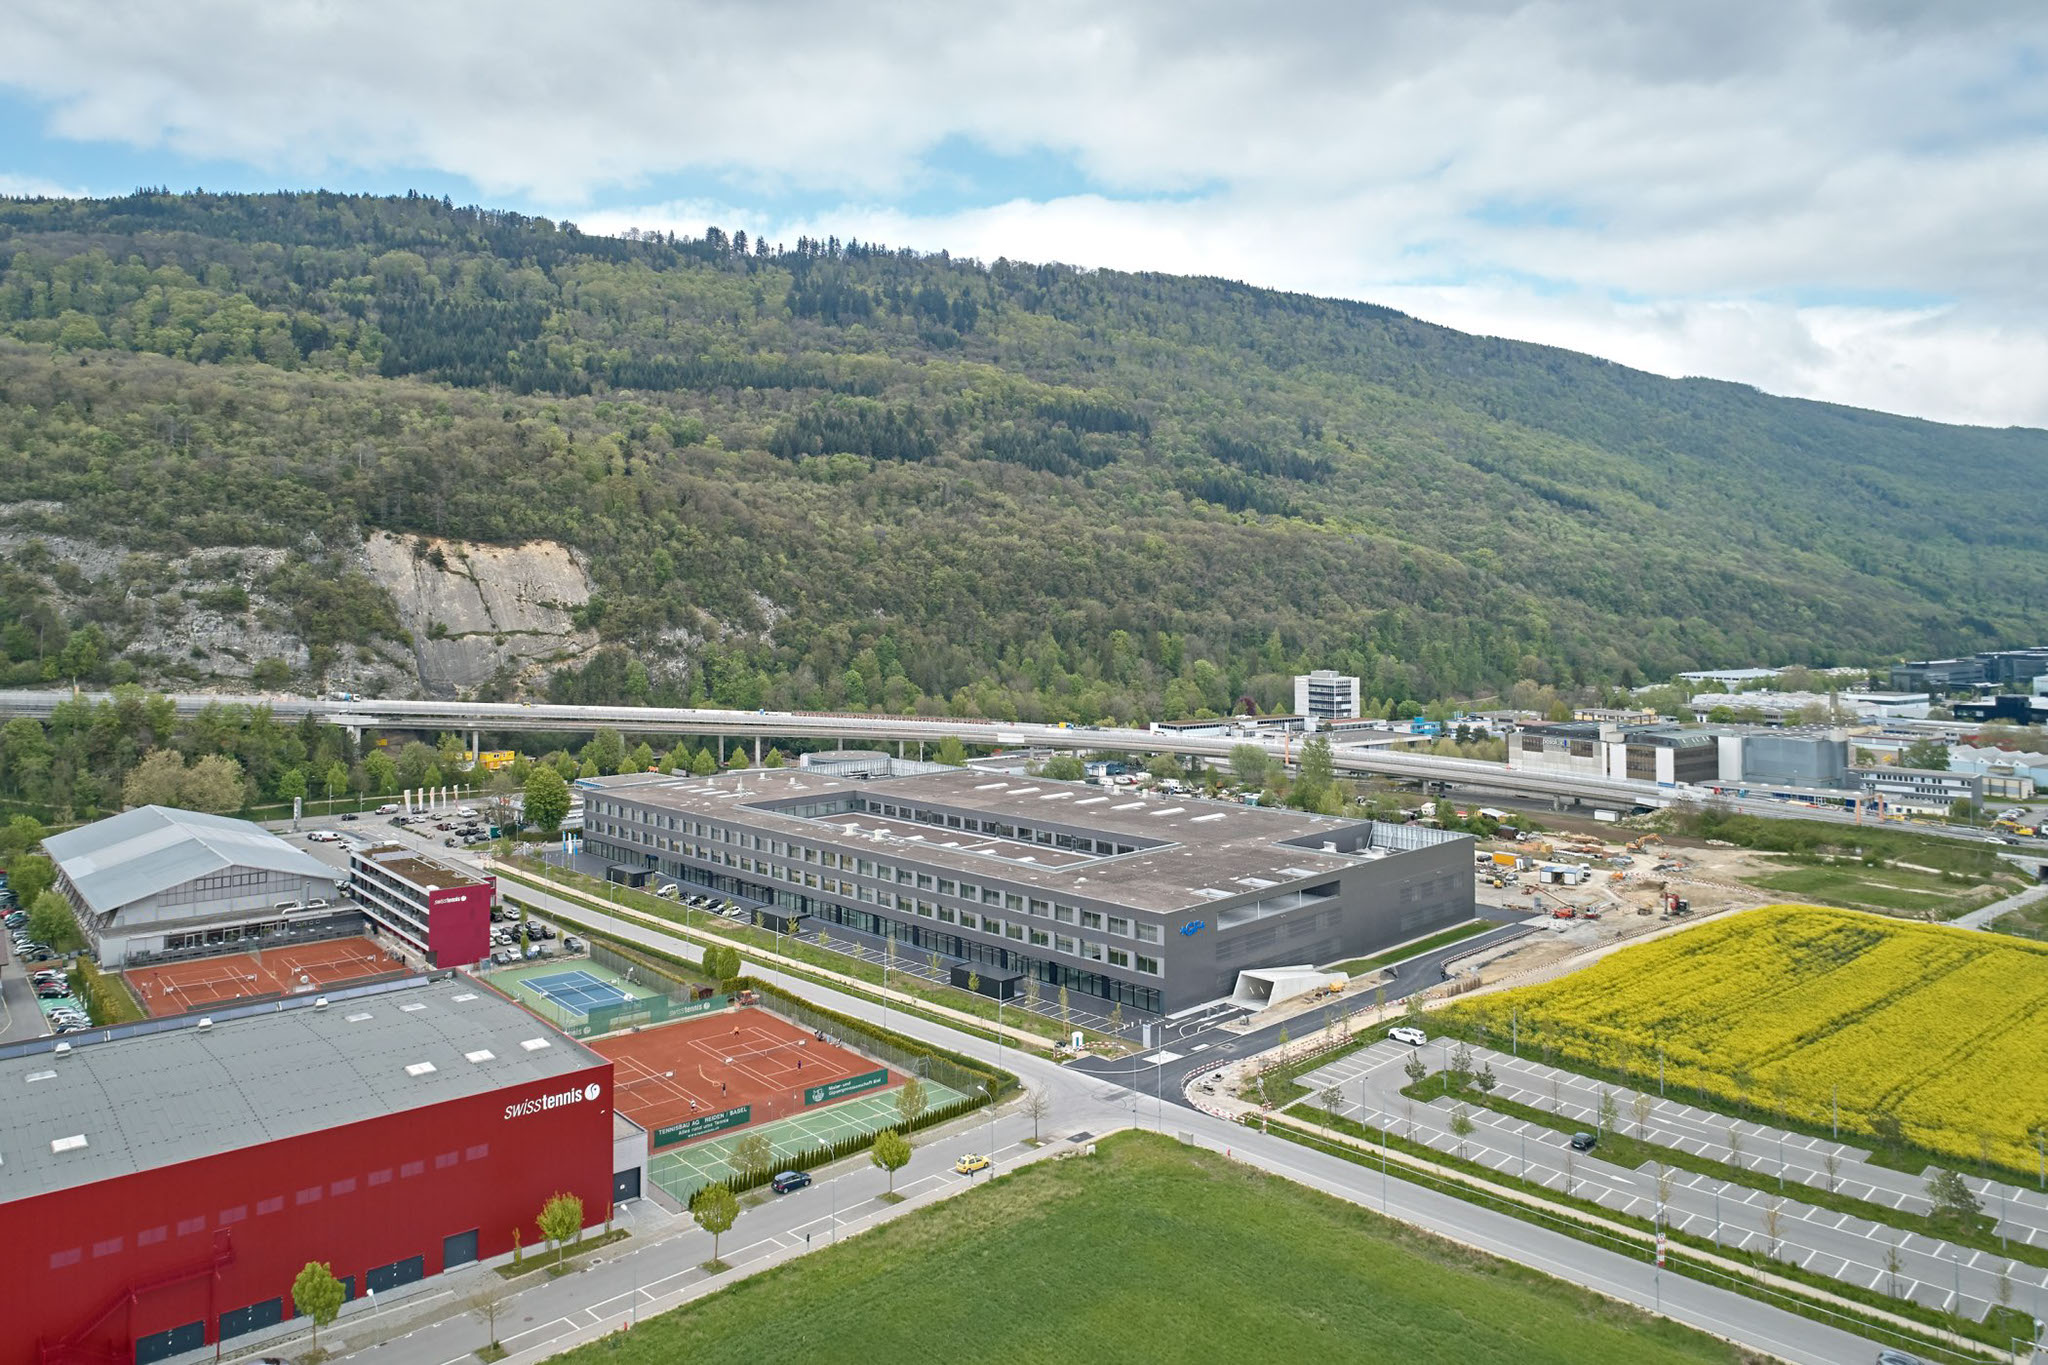 Inauguration of the new innovation and production center in Biel/Bienne